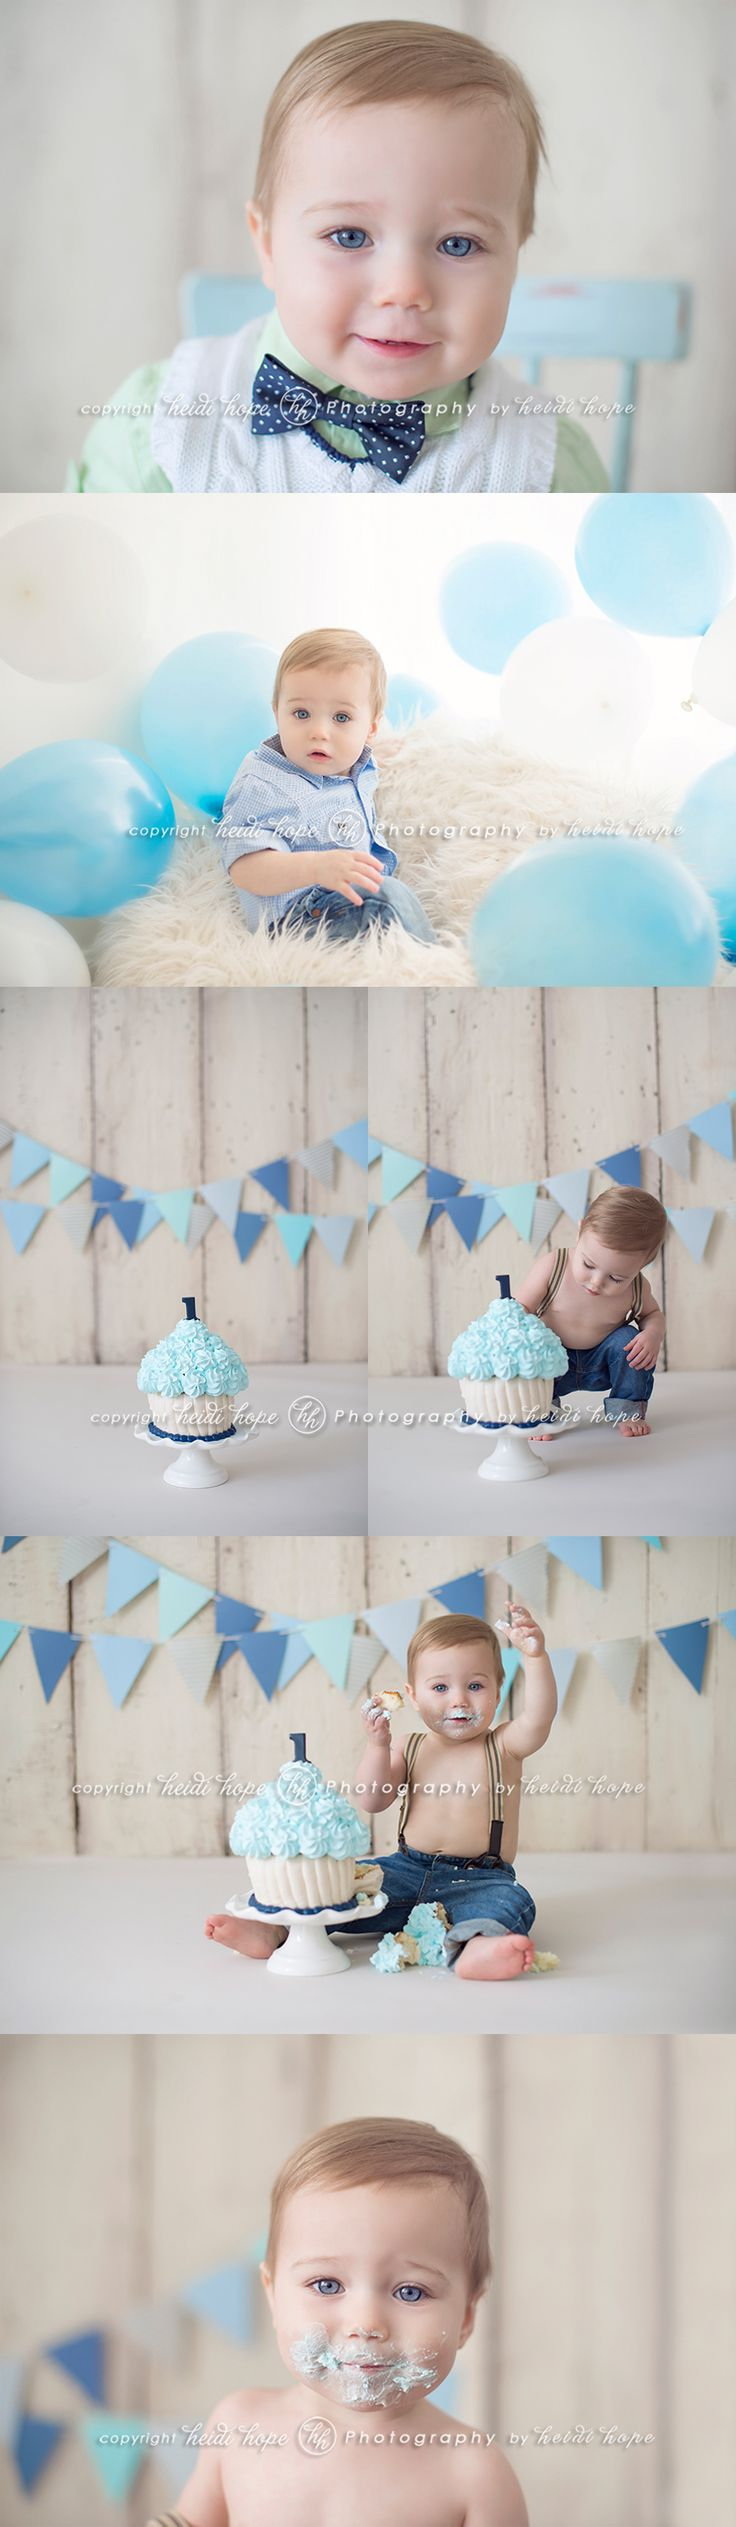 Best 25 Boy cake smash ideas on Pinterest Baby boy first